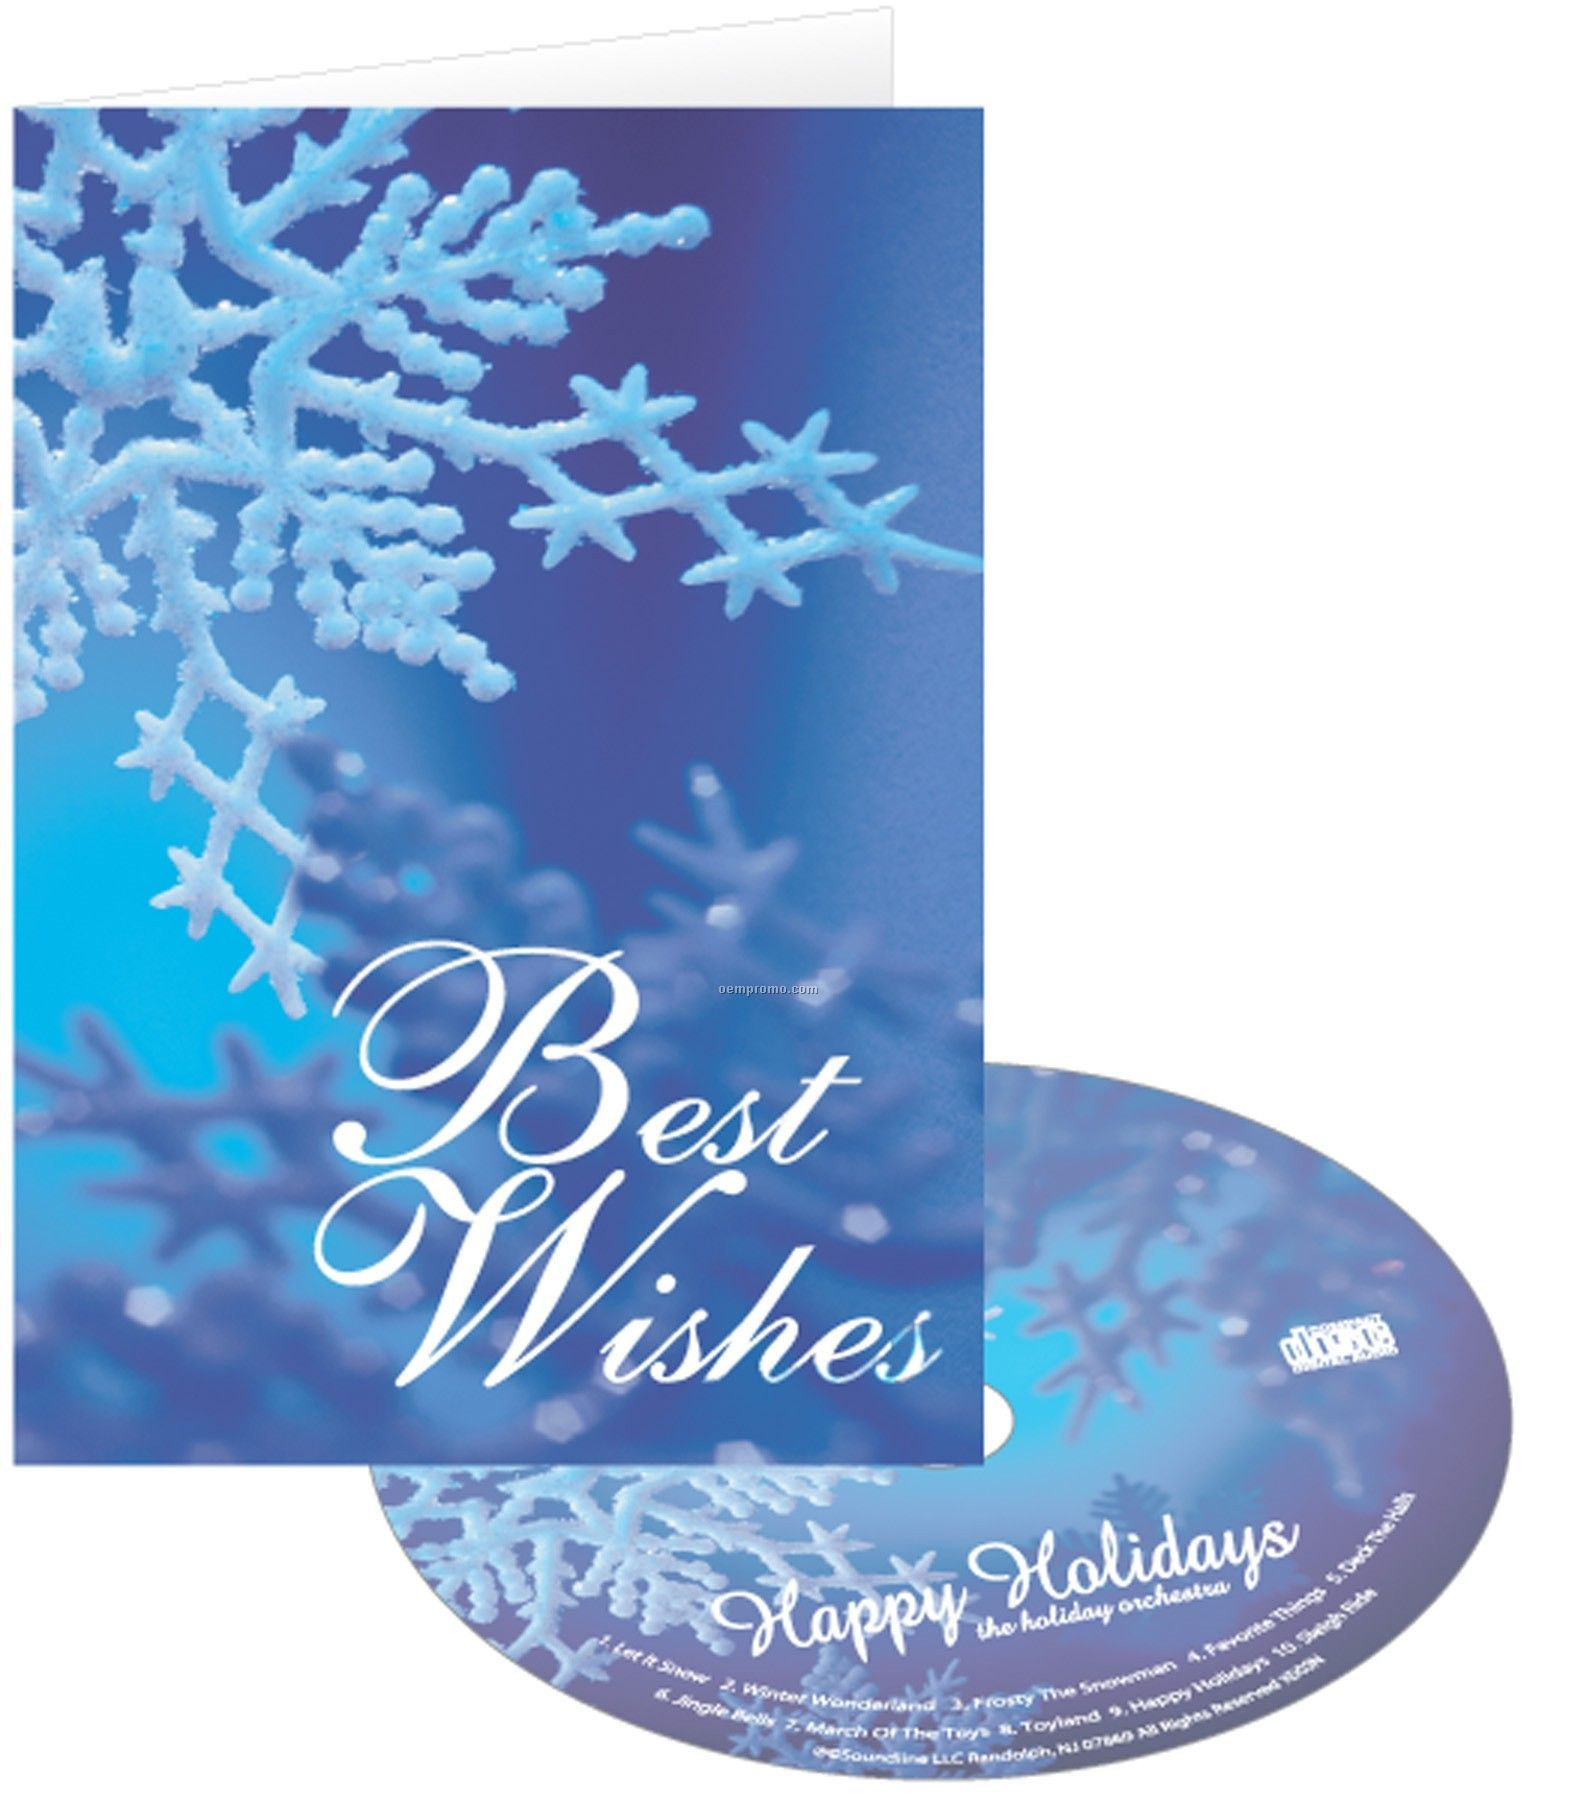 Blue snowflake best wishes holiday greeting card with matching cd blue snowflake best wishes holiday greeting card with matching cd m4hsunfo